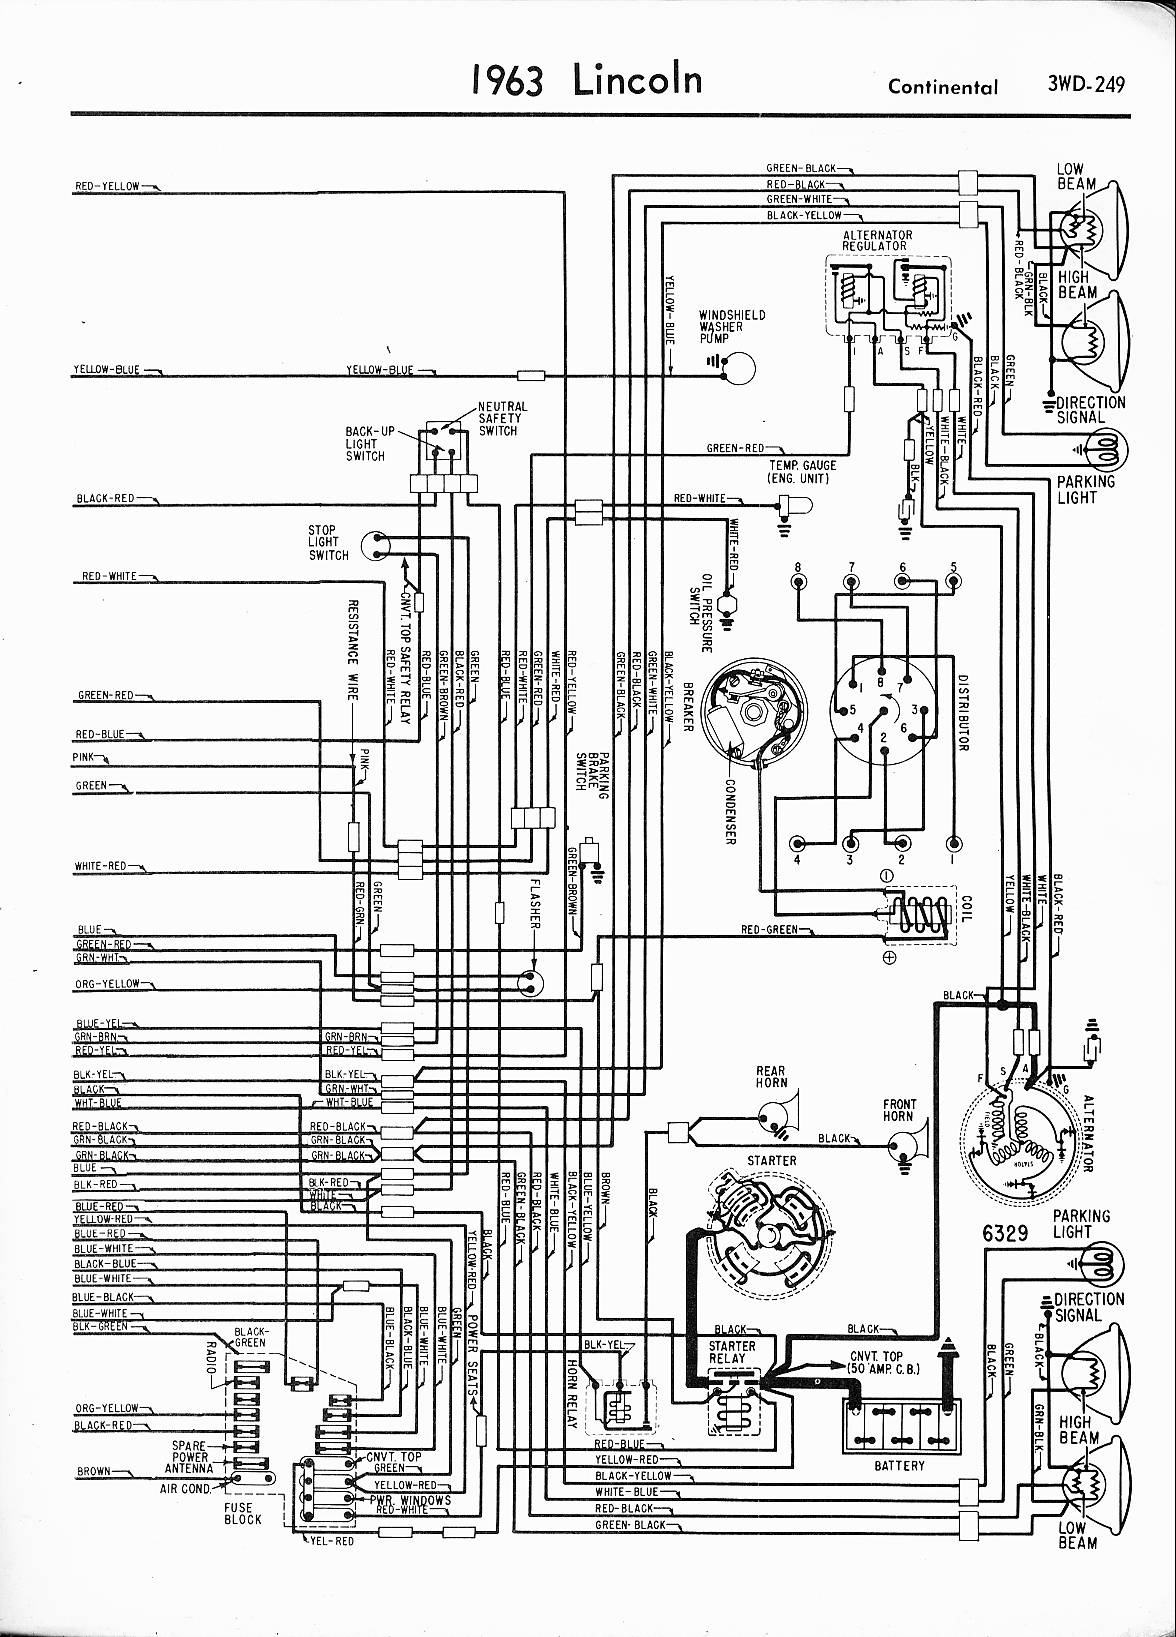 1947 lincoln wiring diagram wiring diagram ebook1947 lincoln wiring diagram